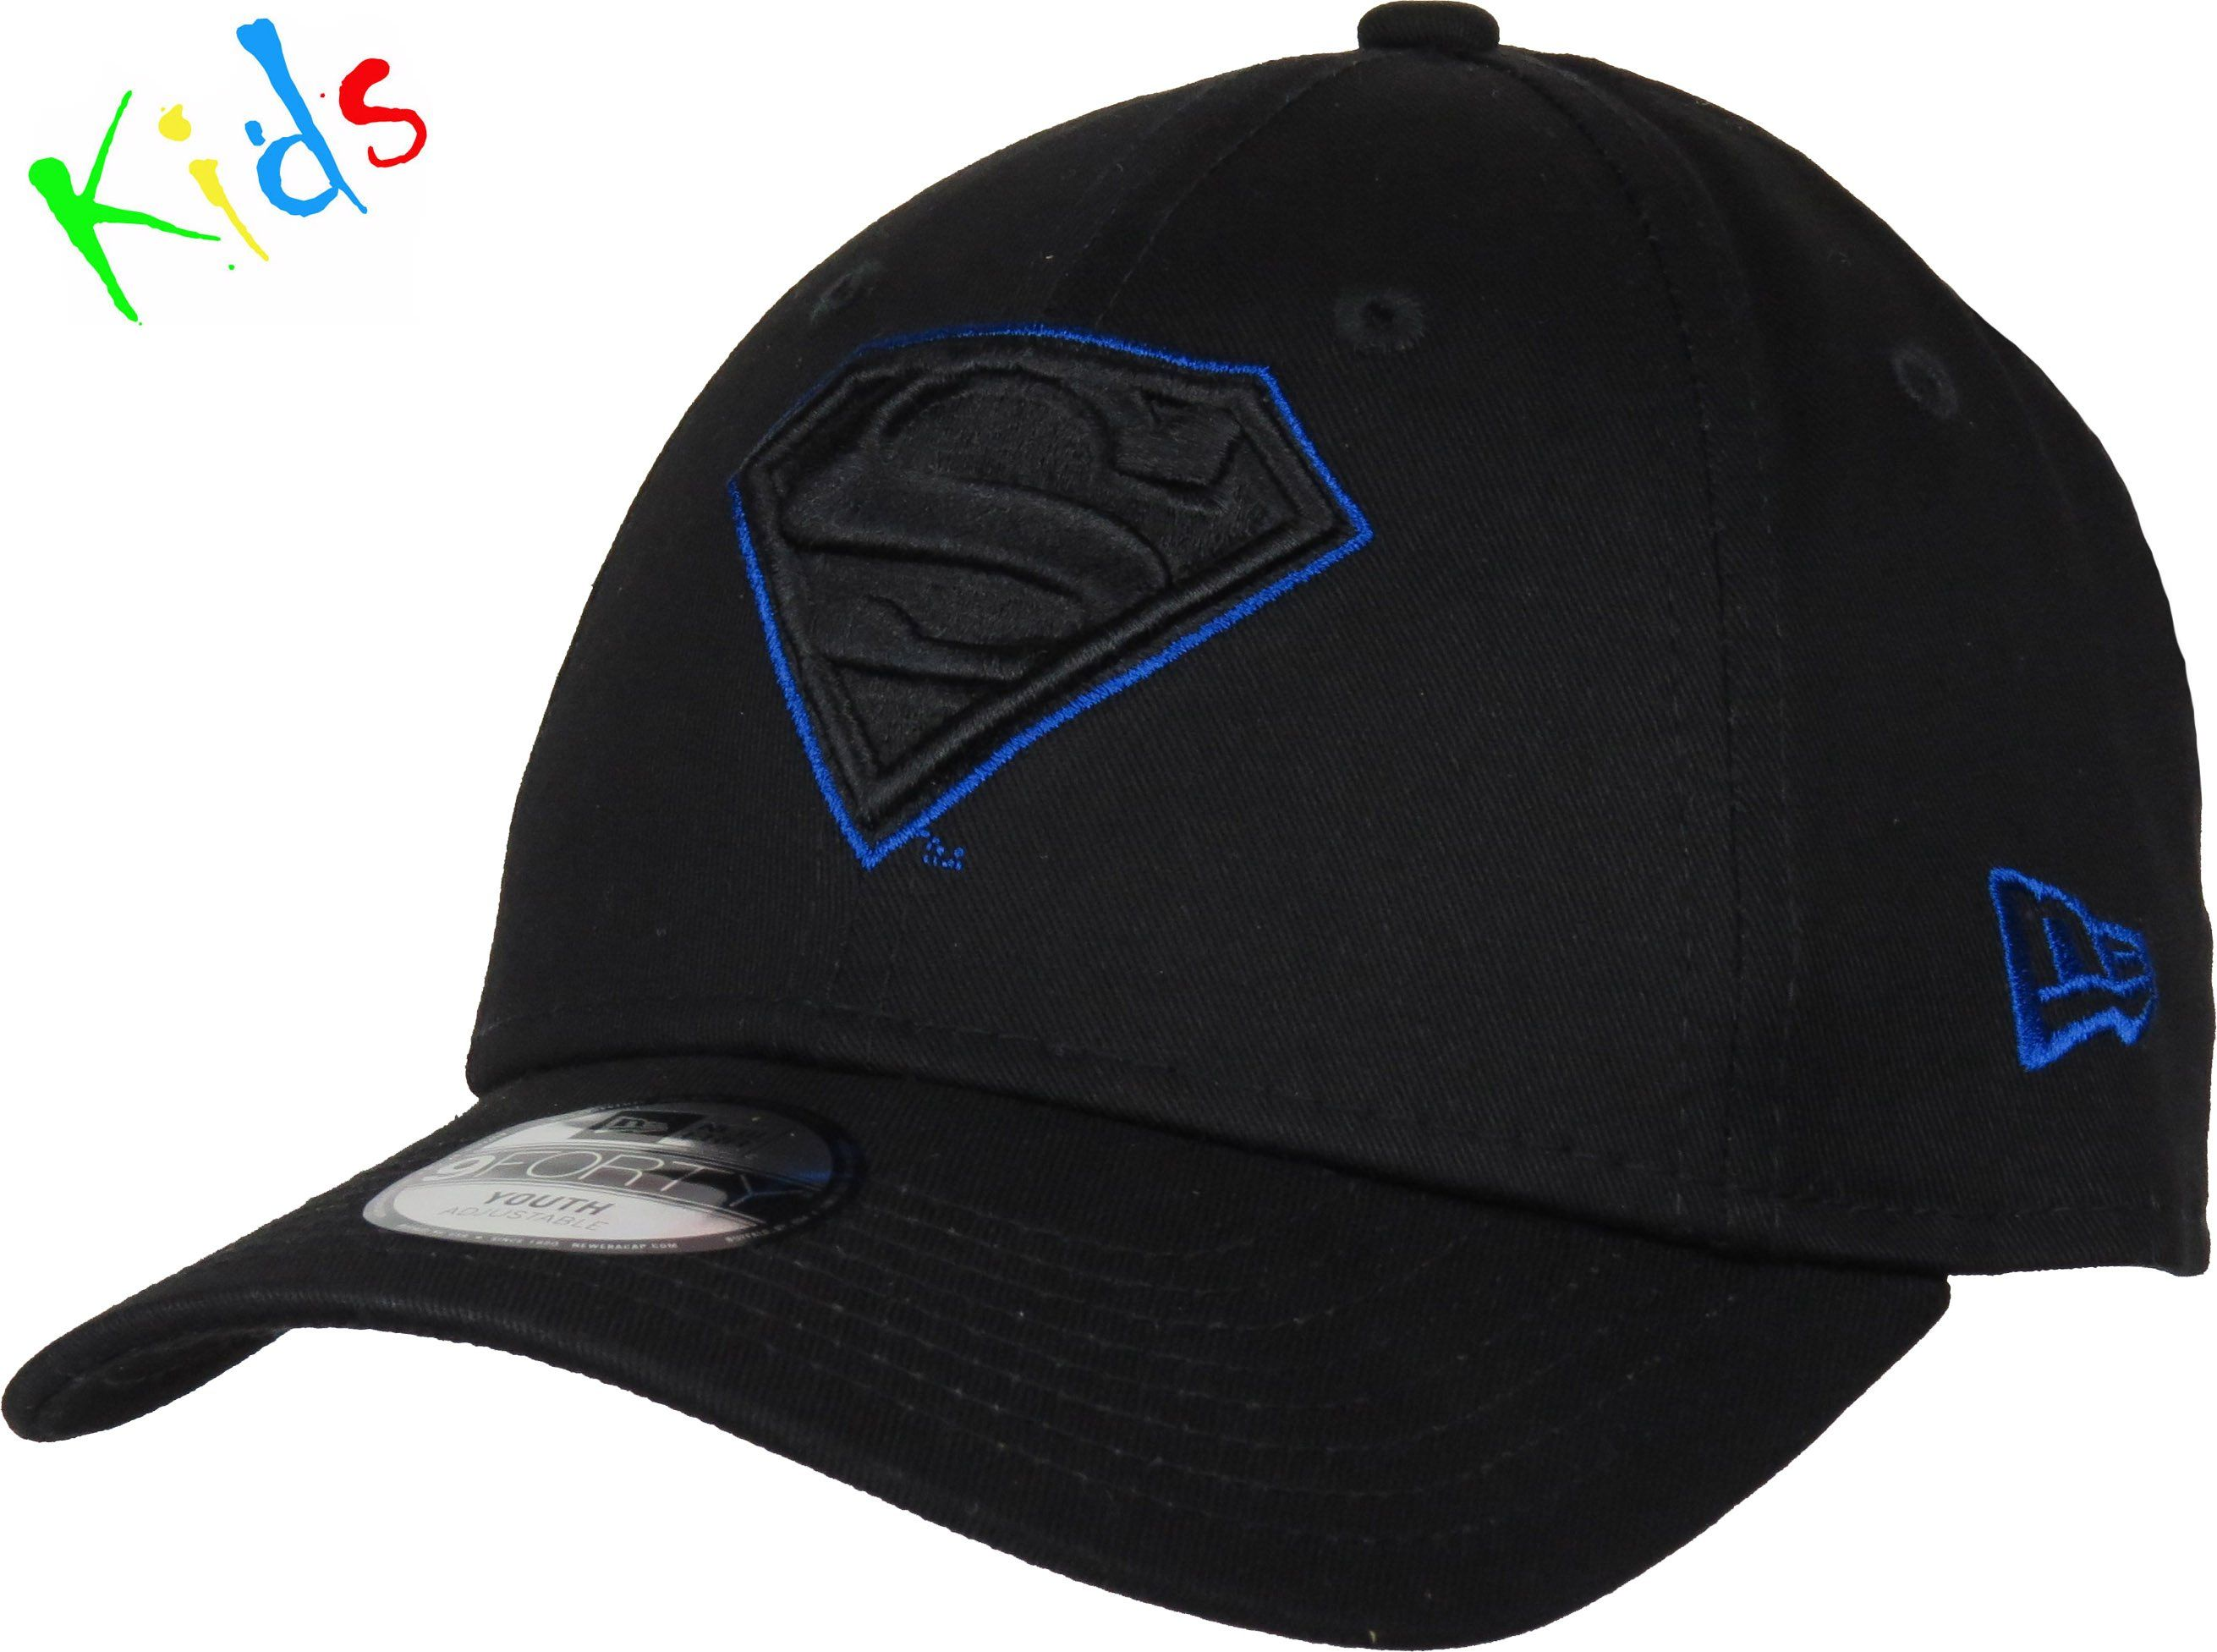 half off 09090 1e879 New Era 940 Kids Character Outline Adjustable Superhero Cap. Black with the  Superman Outlines front